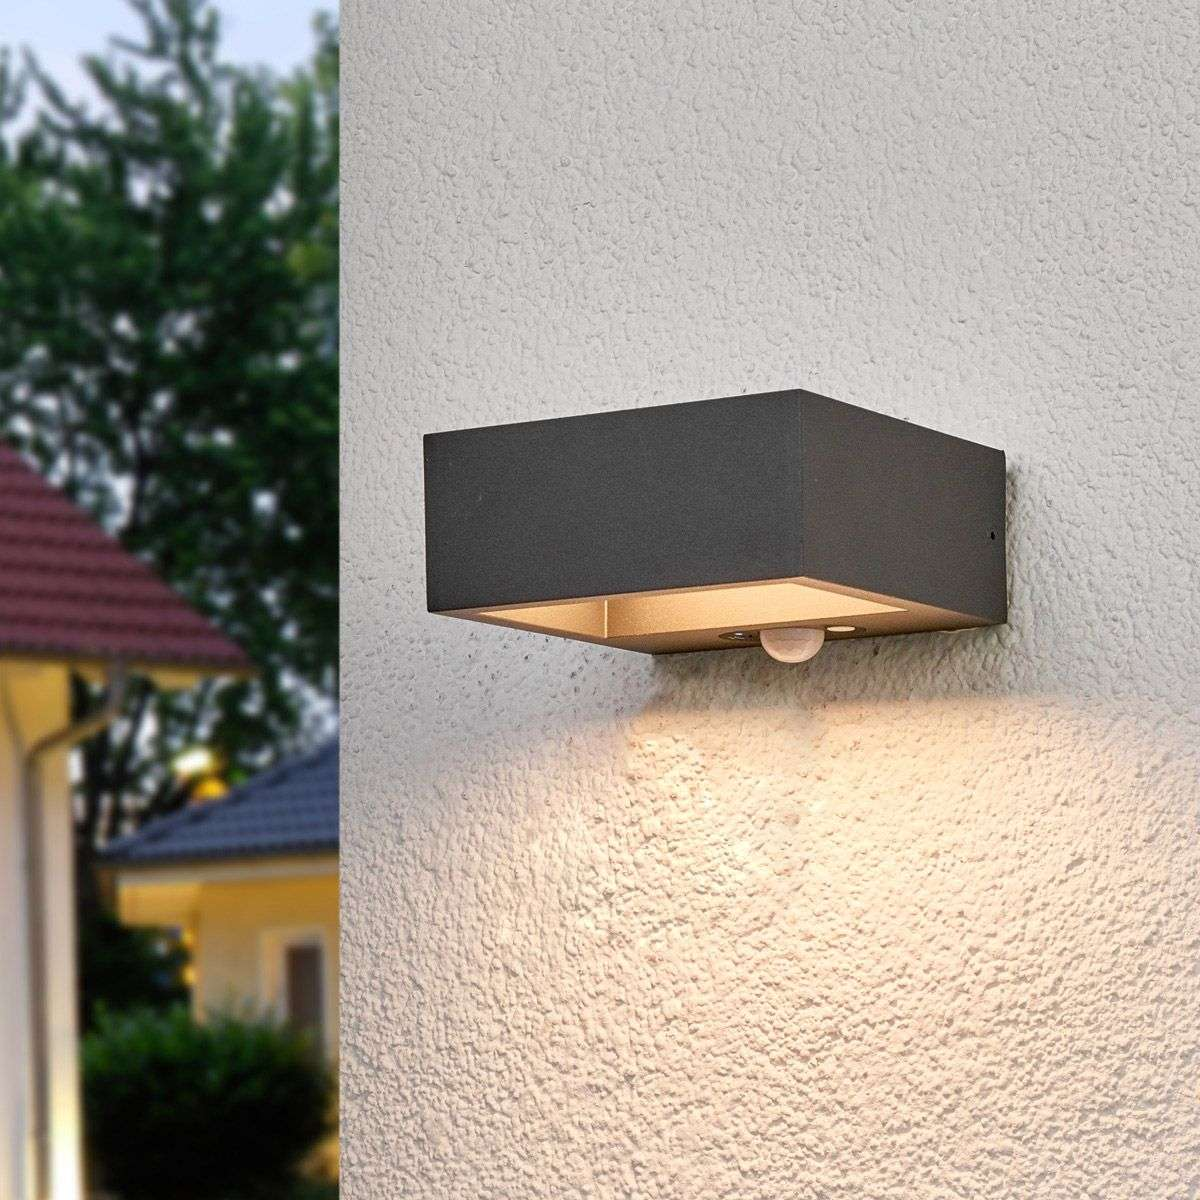 Solar powered led outdoor wall light mahra sensor lights solar powered led outdoor wall light mahra sensor 9619074 31 aloadofball Gallery